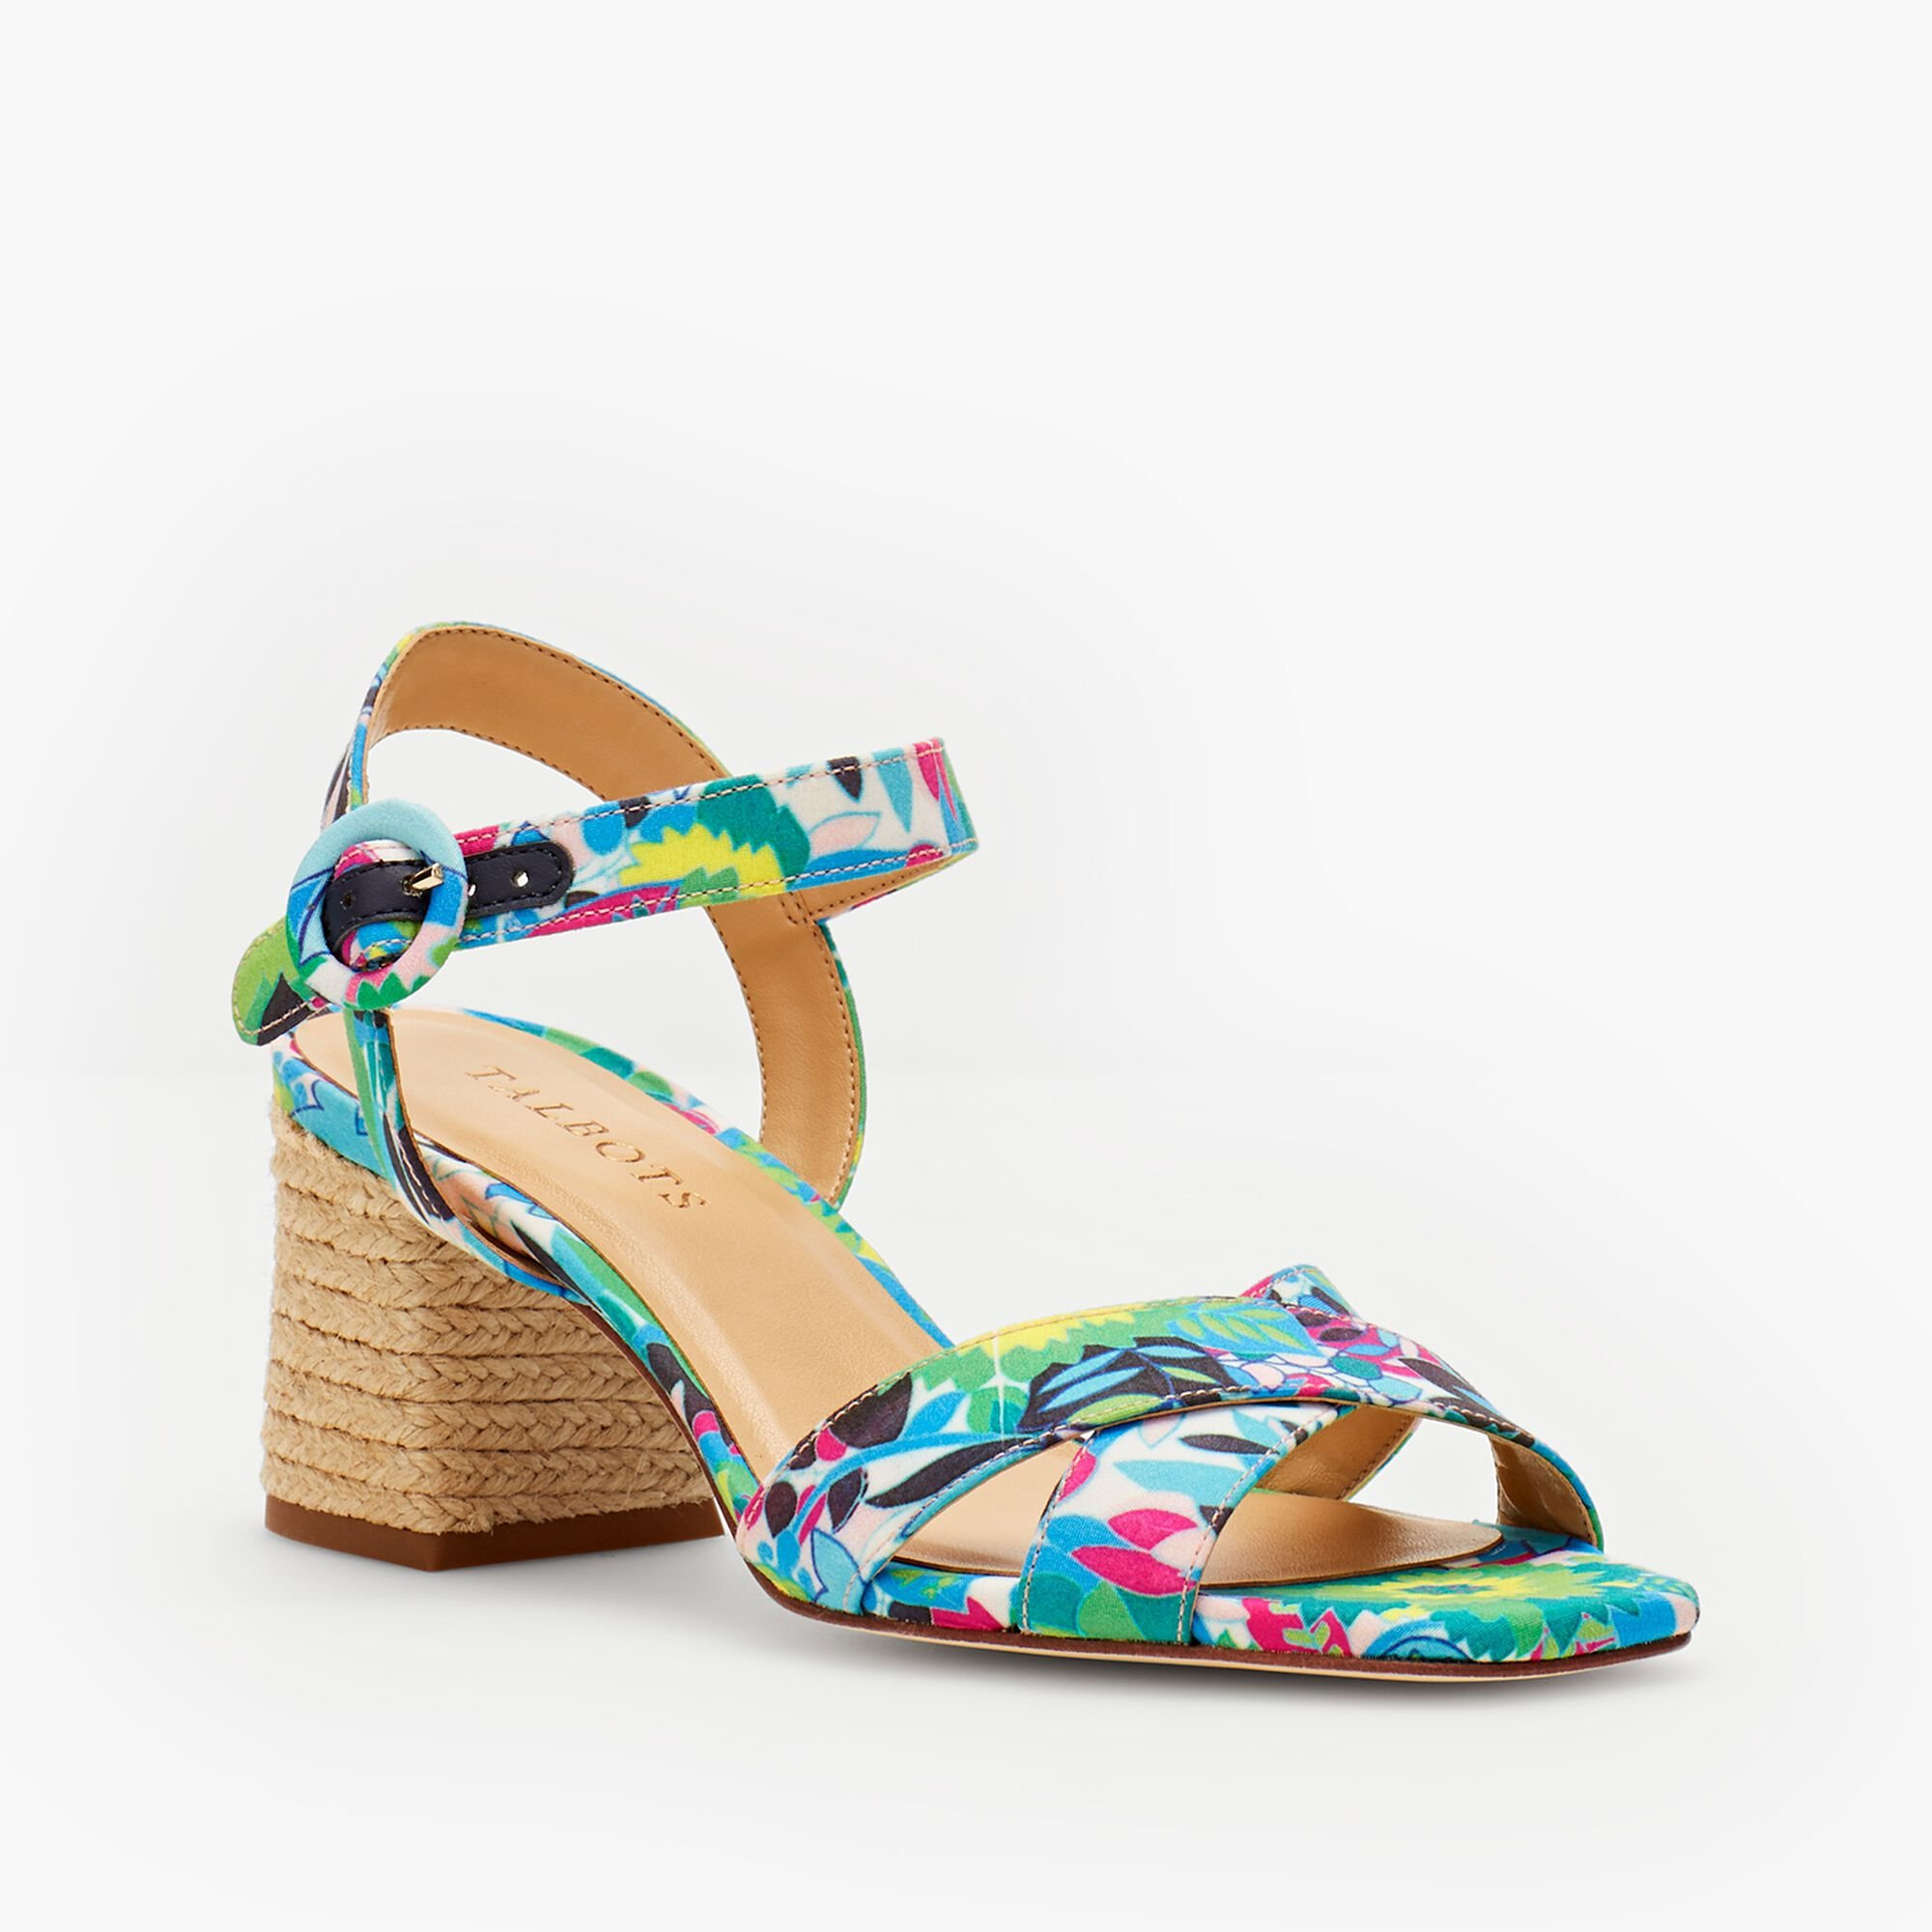 db682211cb Siena Rope Heel Sandal - Printed Twill Opens a New Window.